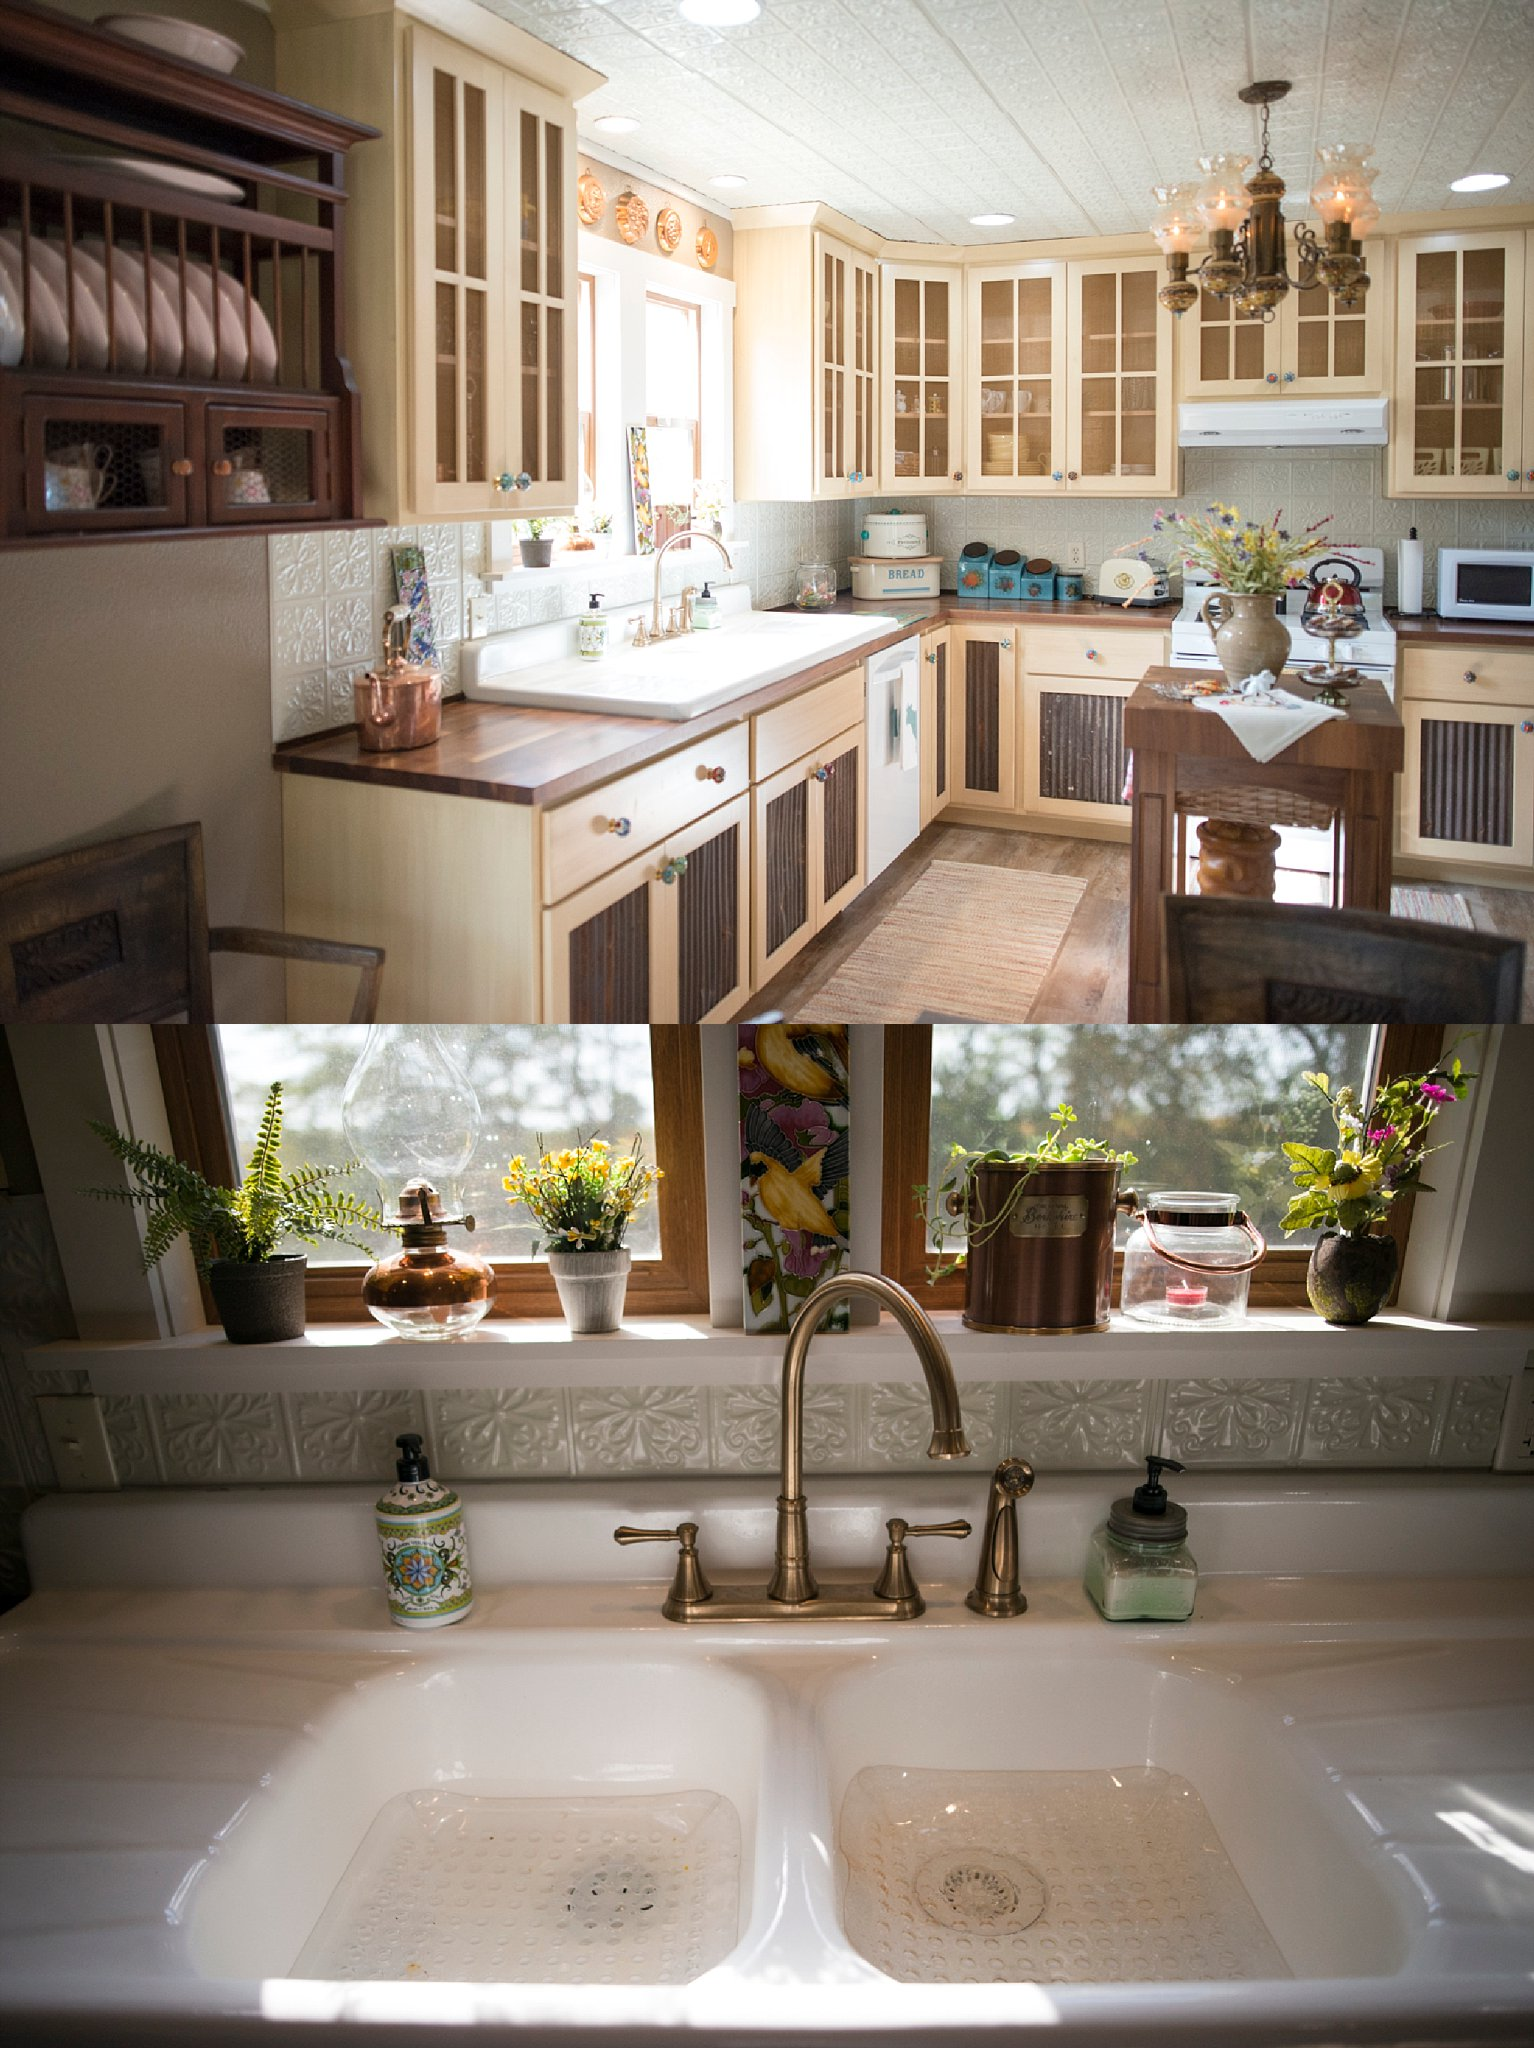 Top: The screens in her kitchen cupboards are her pride and joy.She had old tin from her family farm inserted on the bottom and up top she utilized copper screen wire that her dad had saved. Bottom: The kitchen sink came from an old house that was torn down. Since it was full of raccoon poop and in pretty bad shape when she found it, she had it recovered.